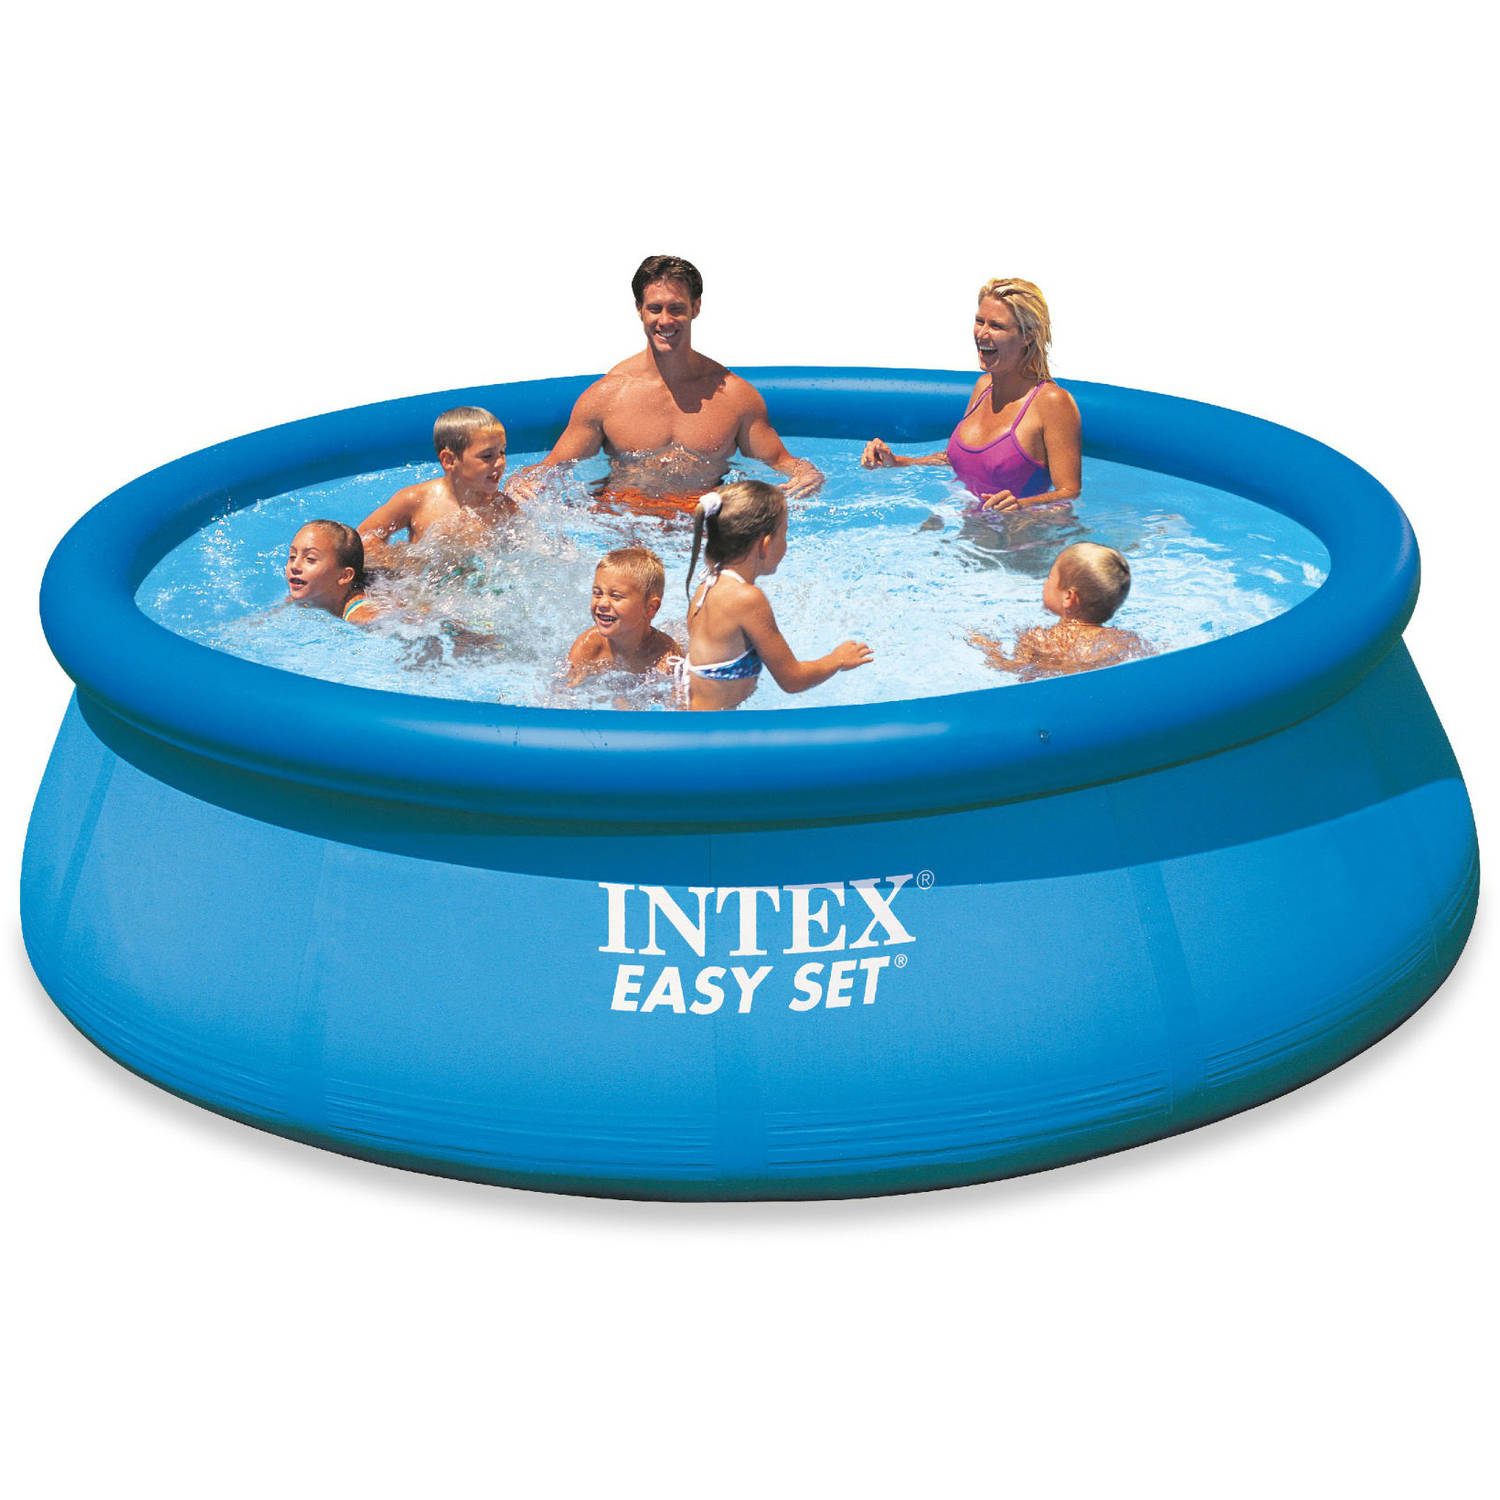 Intex 12' x 30'' Easy Set Above Ground Swimming Pool with Filter Pump